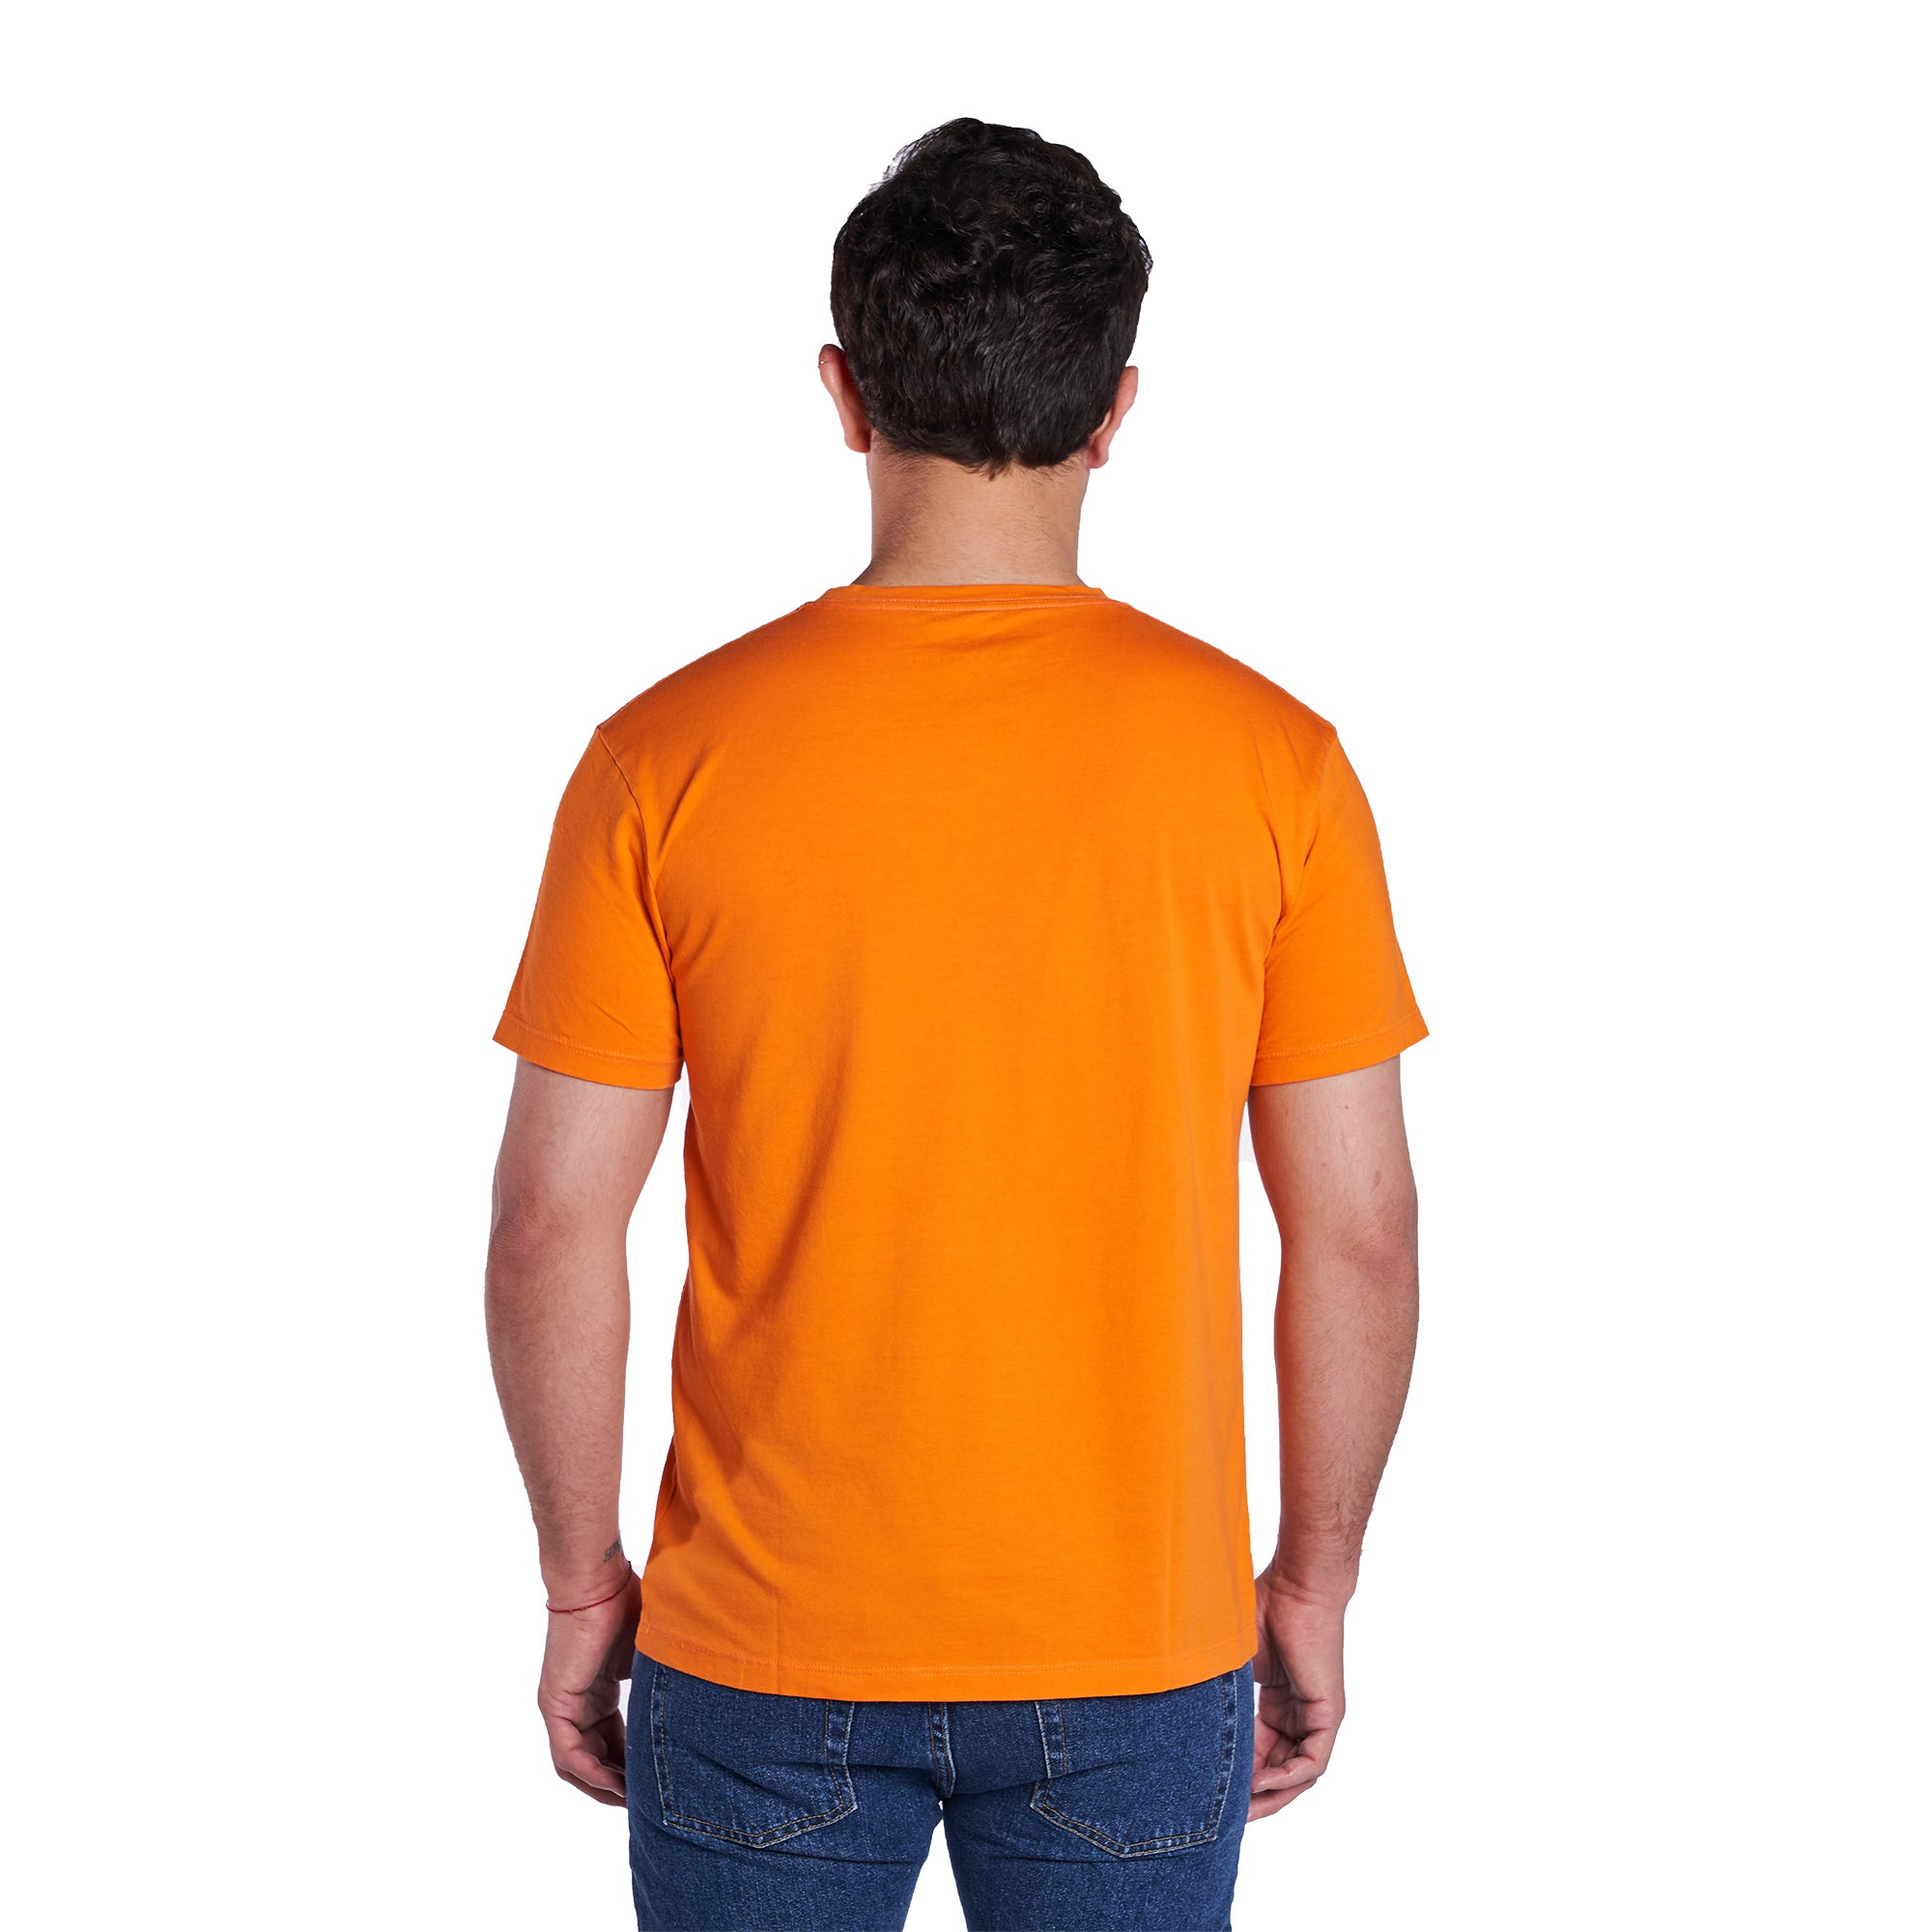 Vintage Crew T-Shirt - Soft Orange